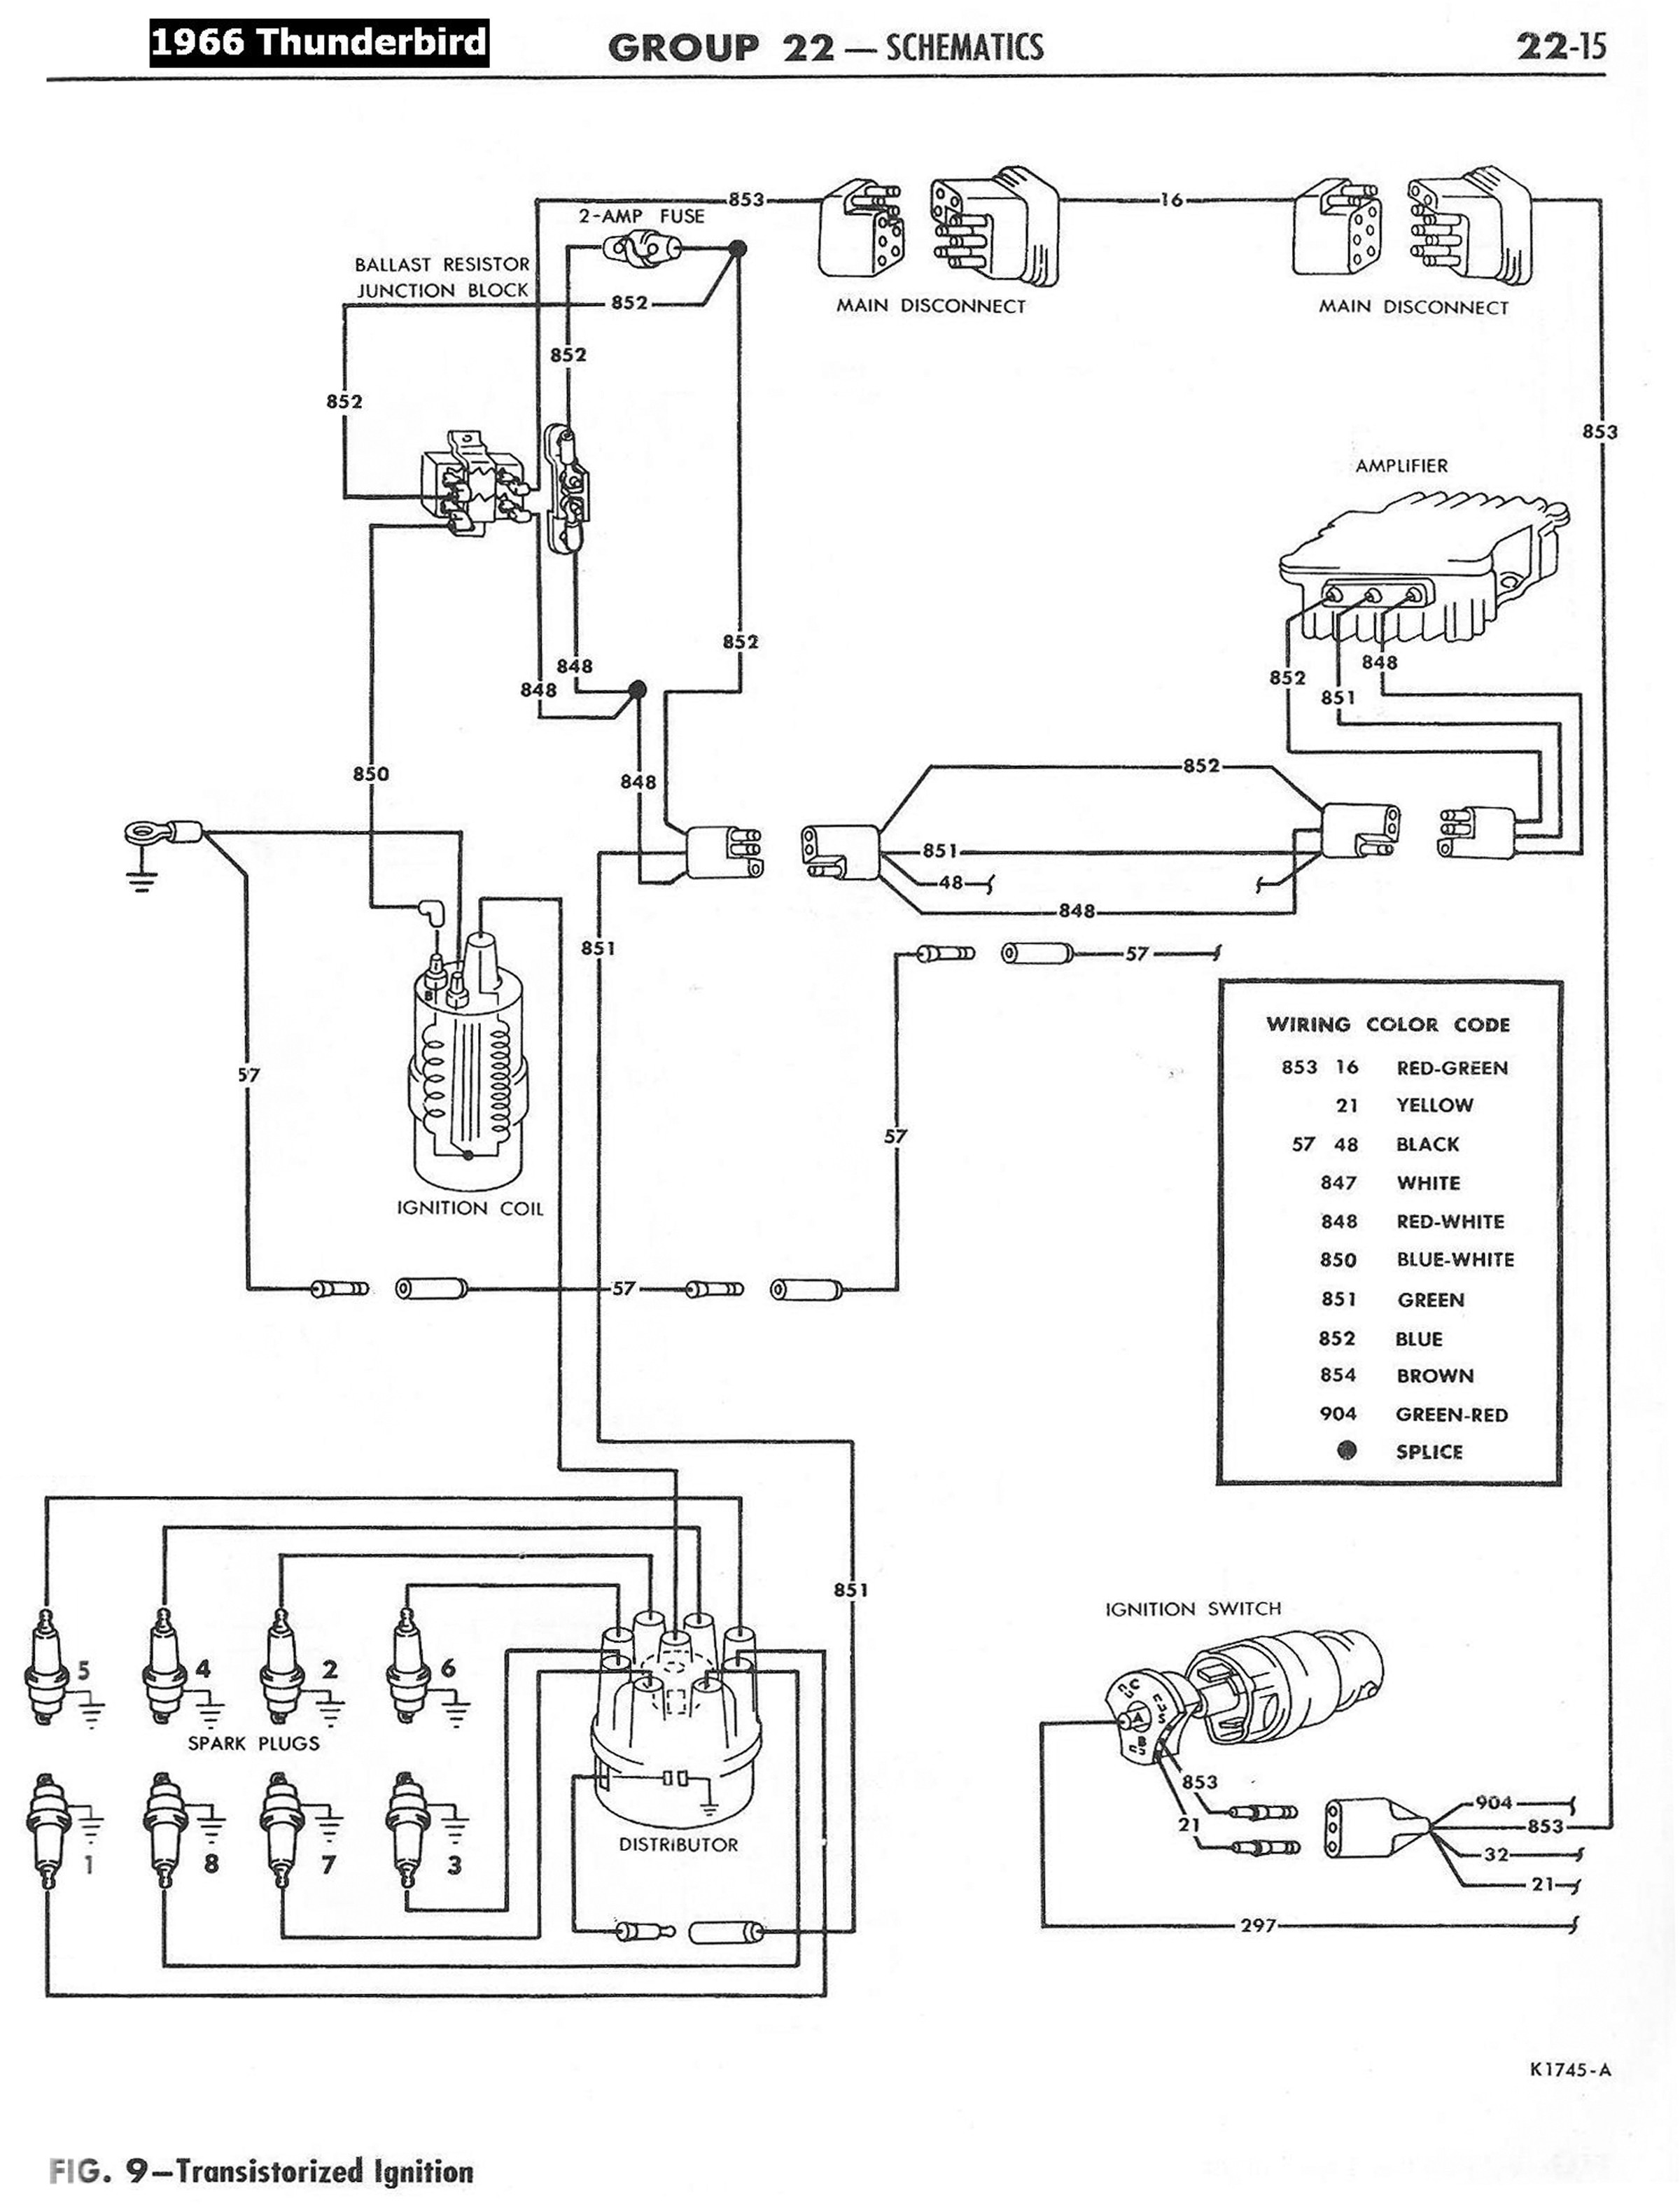 Car ignition system diagram car ignition system wiring diagram car ignition system diagram car ignition system wiring diagram transistor type ignition of car ignition system asfbconference2016 Images